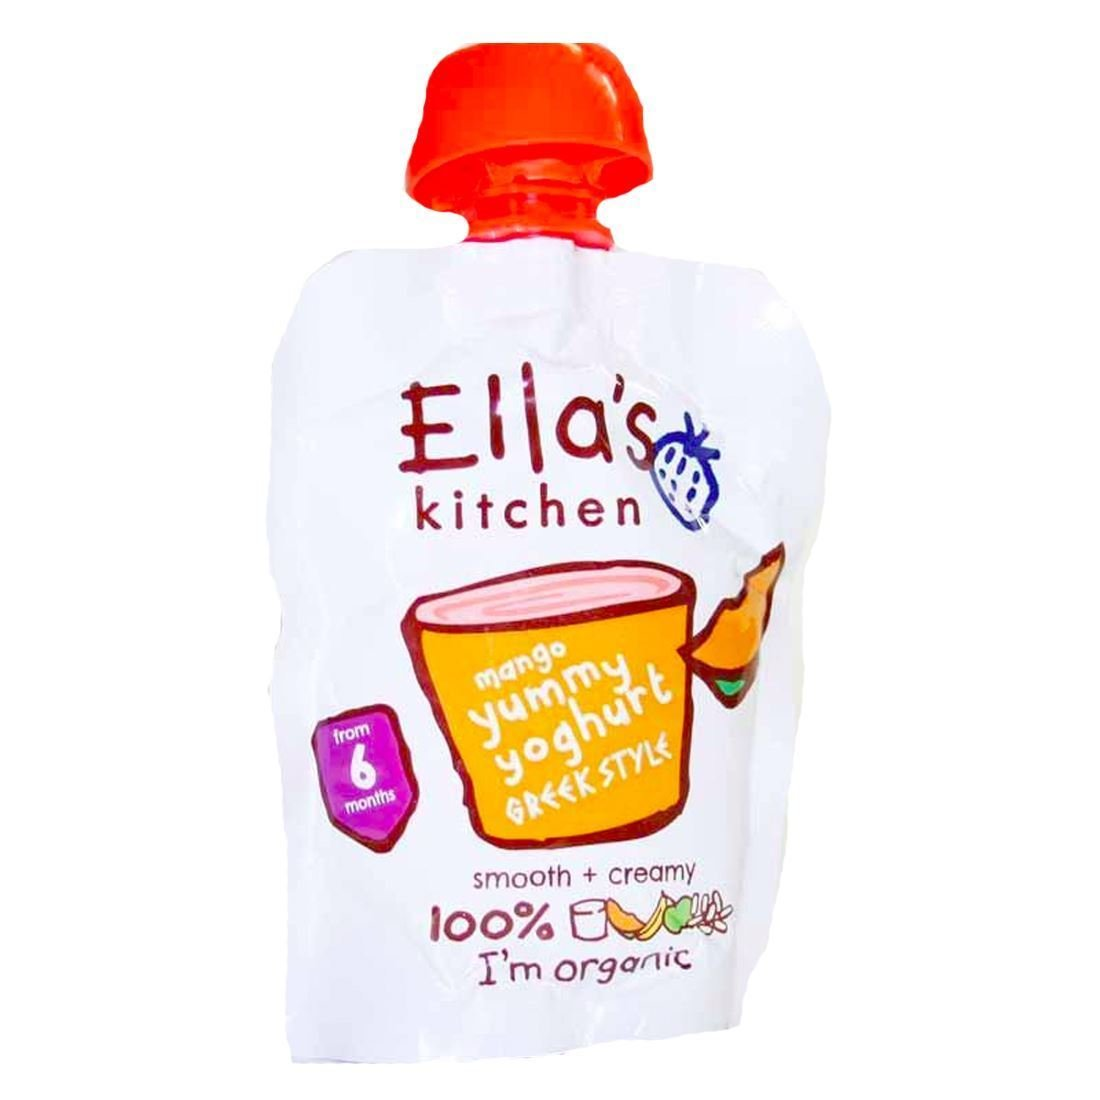 Ella's Kitchen Organic Greek Yoghurt & Mangoes?90g by Ella's Kitchen Ella' s Kitchen